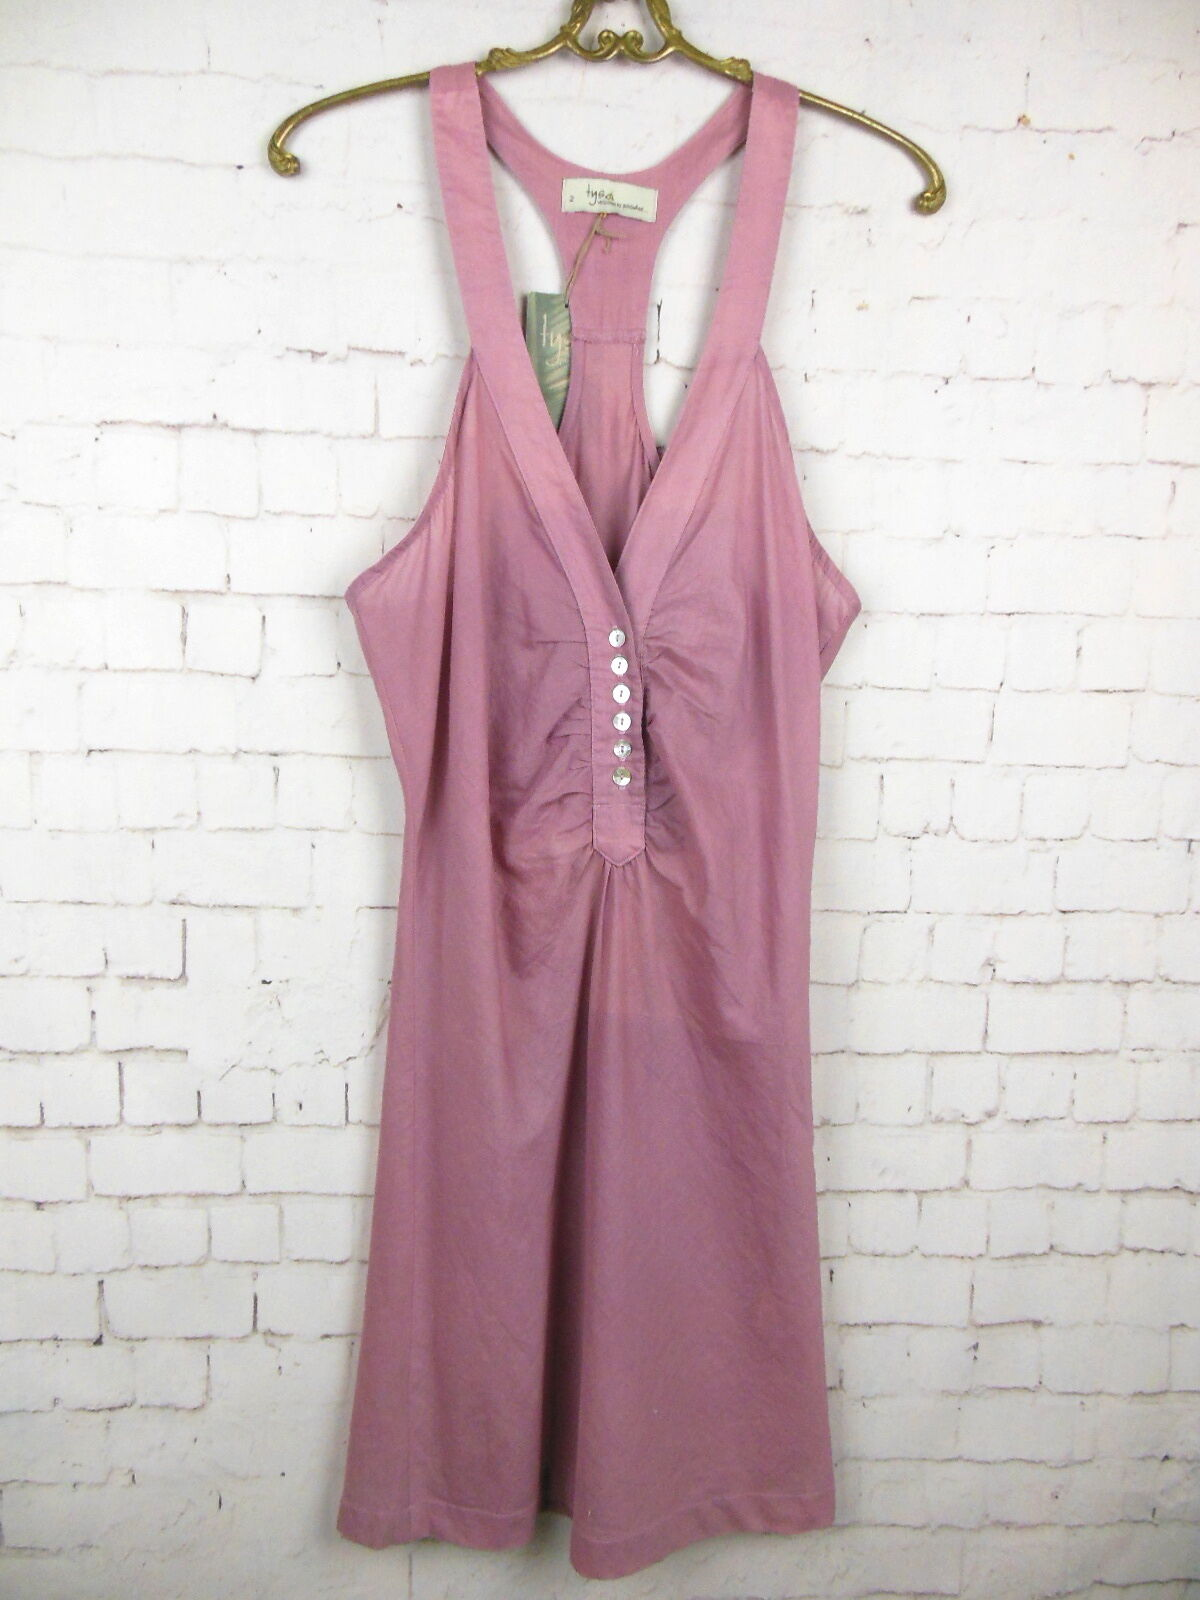 ..NWT TYSA 100% COTTON mauve Thin Low V Neck Racer Back Dress Sz 2 BXR